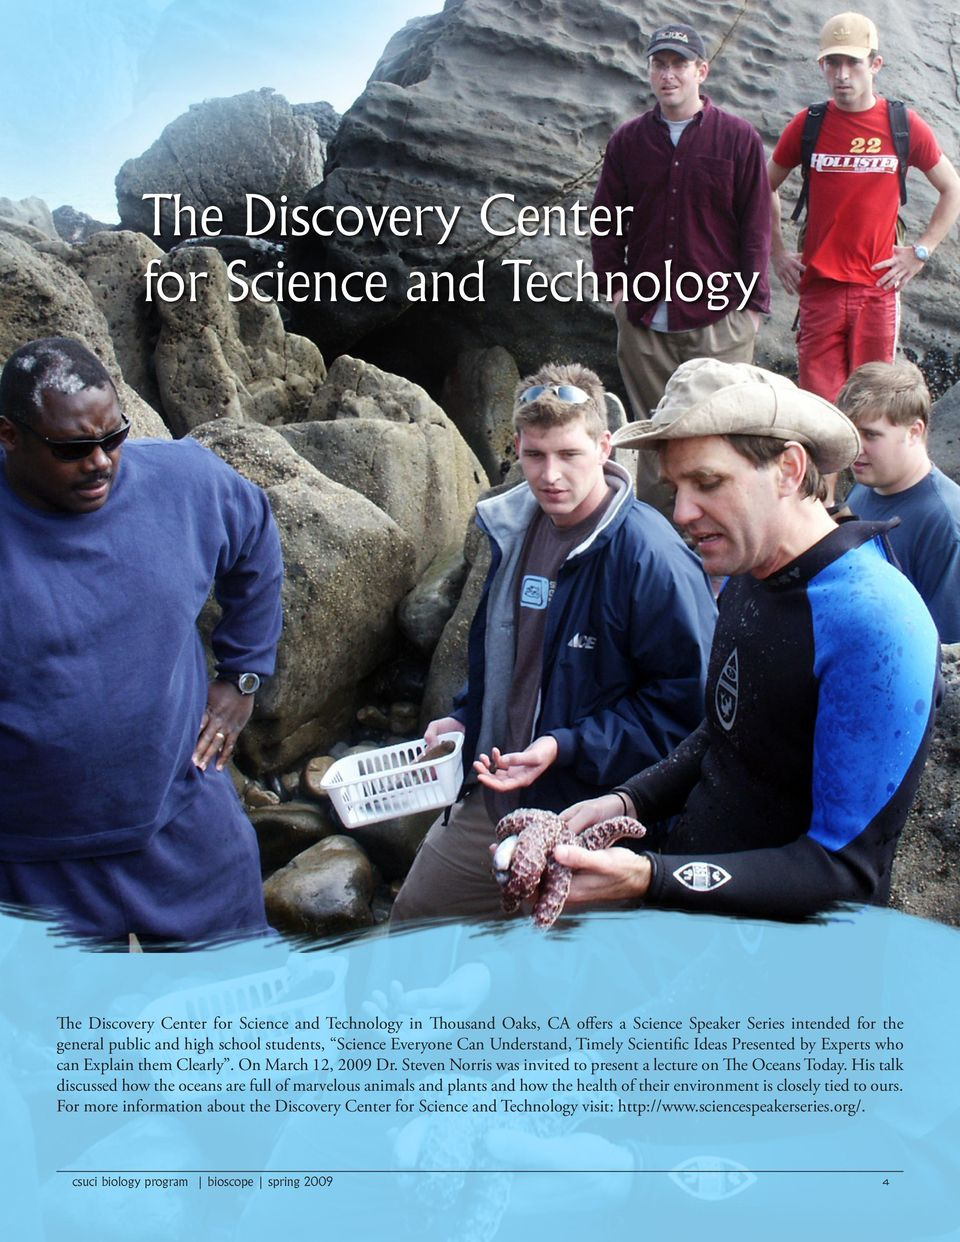 On March 12, 2009 Dr. Steven Norris was invited to present a lecture on The Oceans Today.